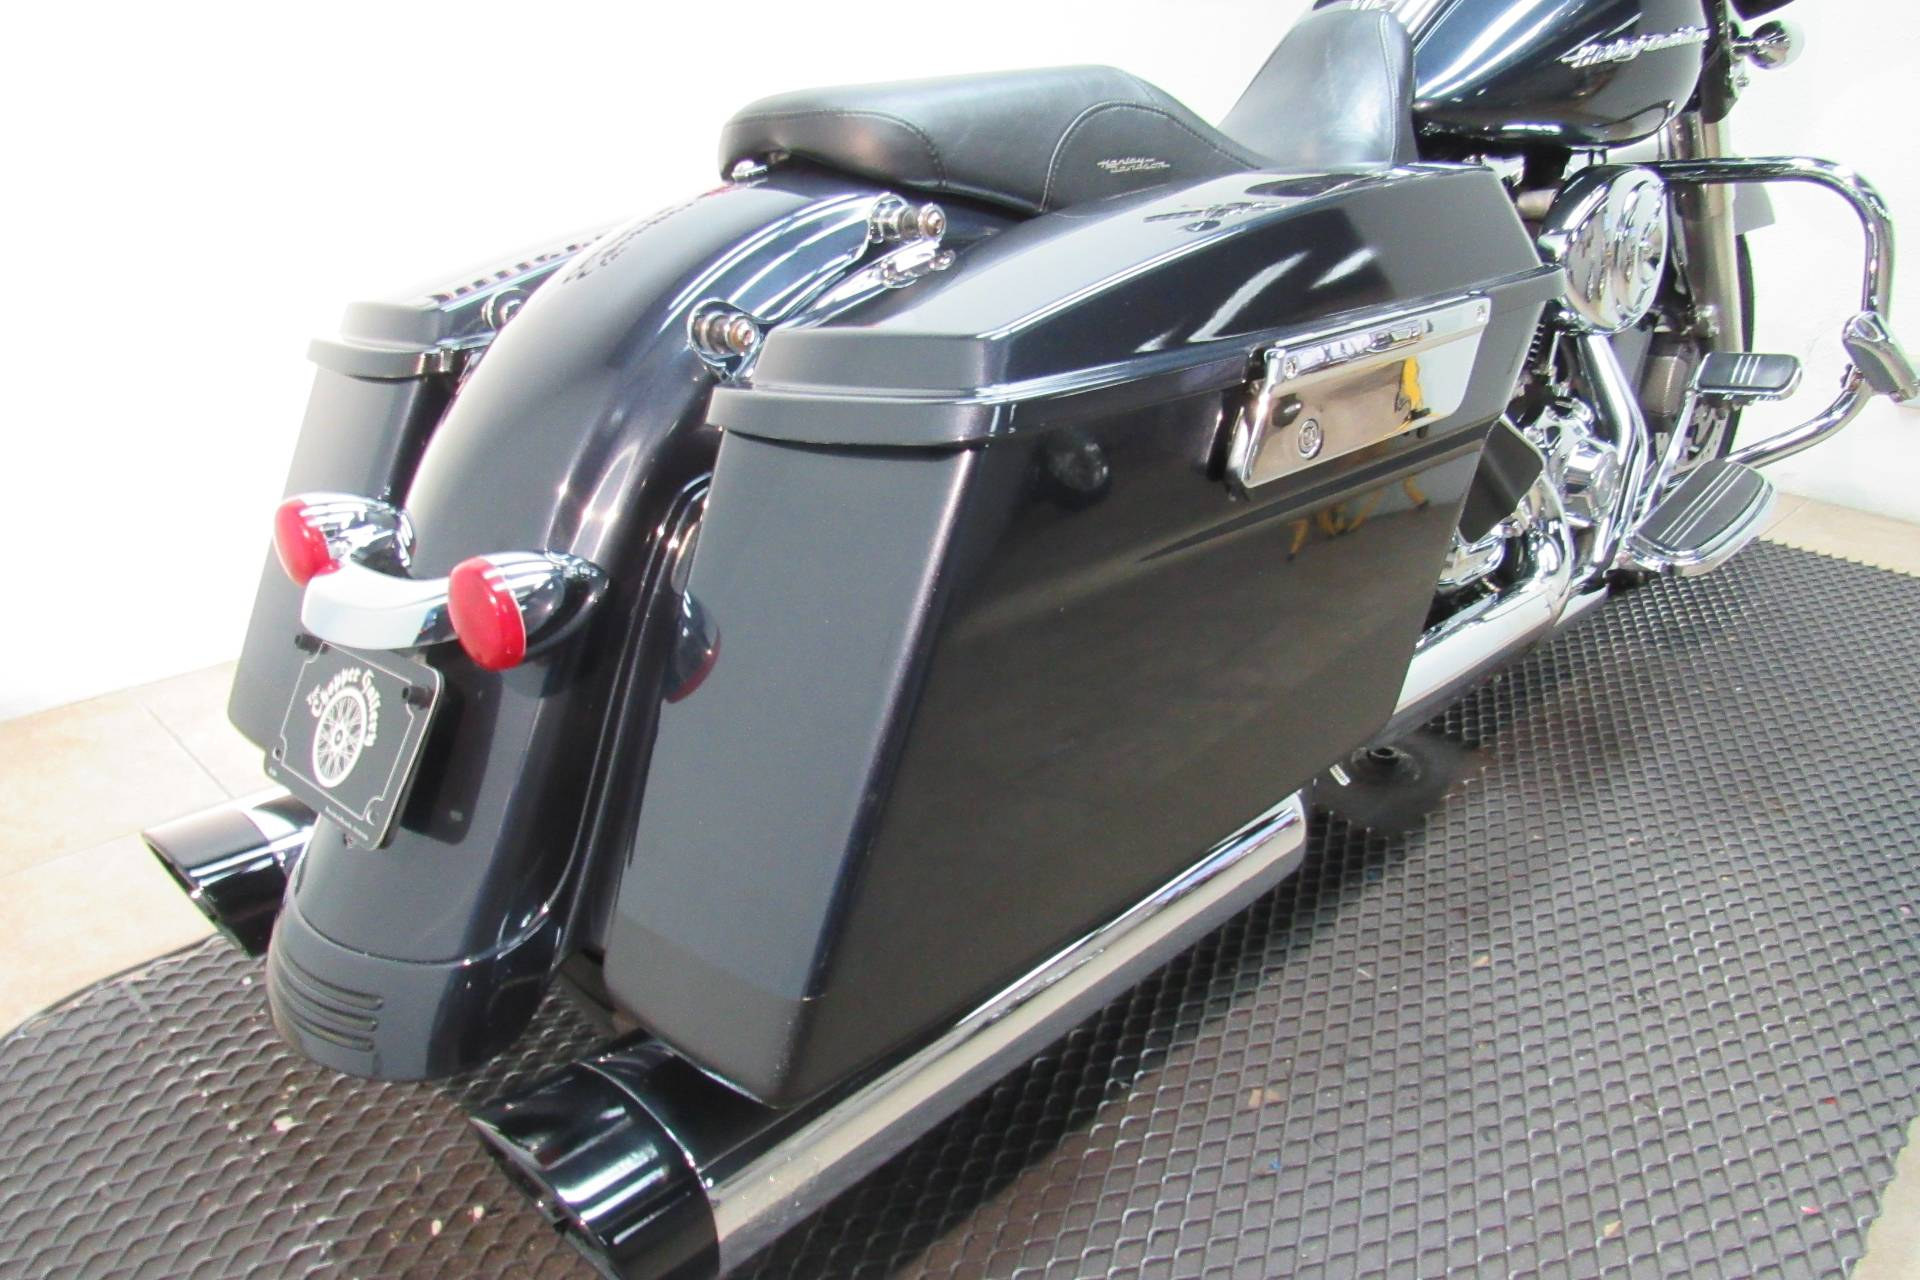 2010 Harley-Davidson Street Glide® in Temecula, California - Photo 21